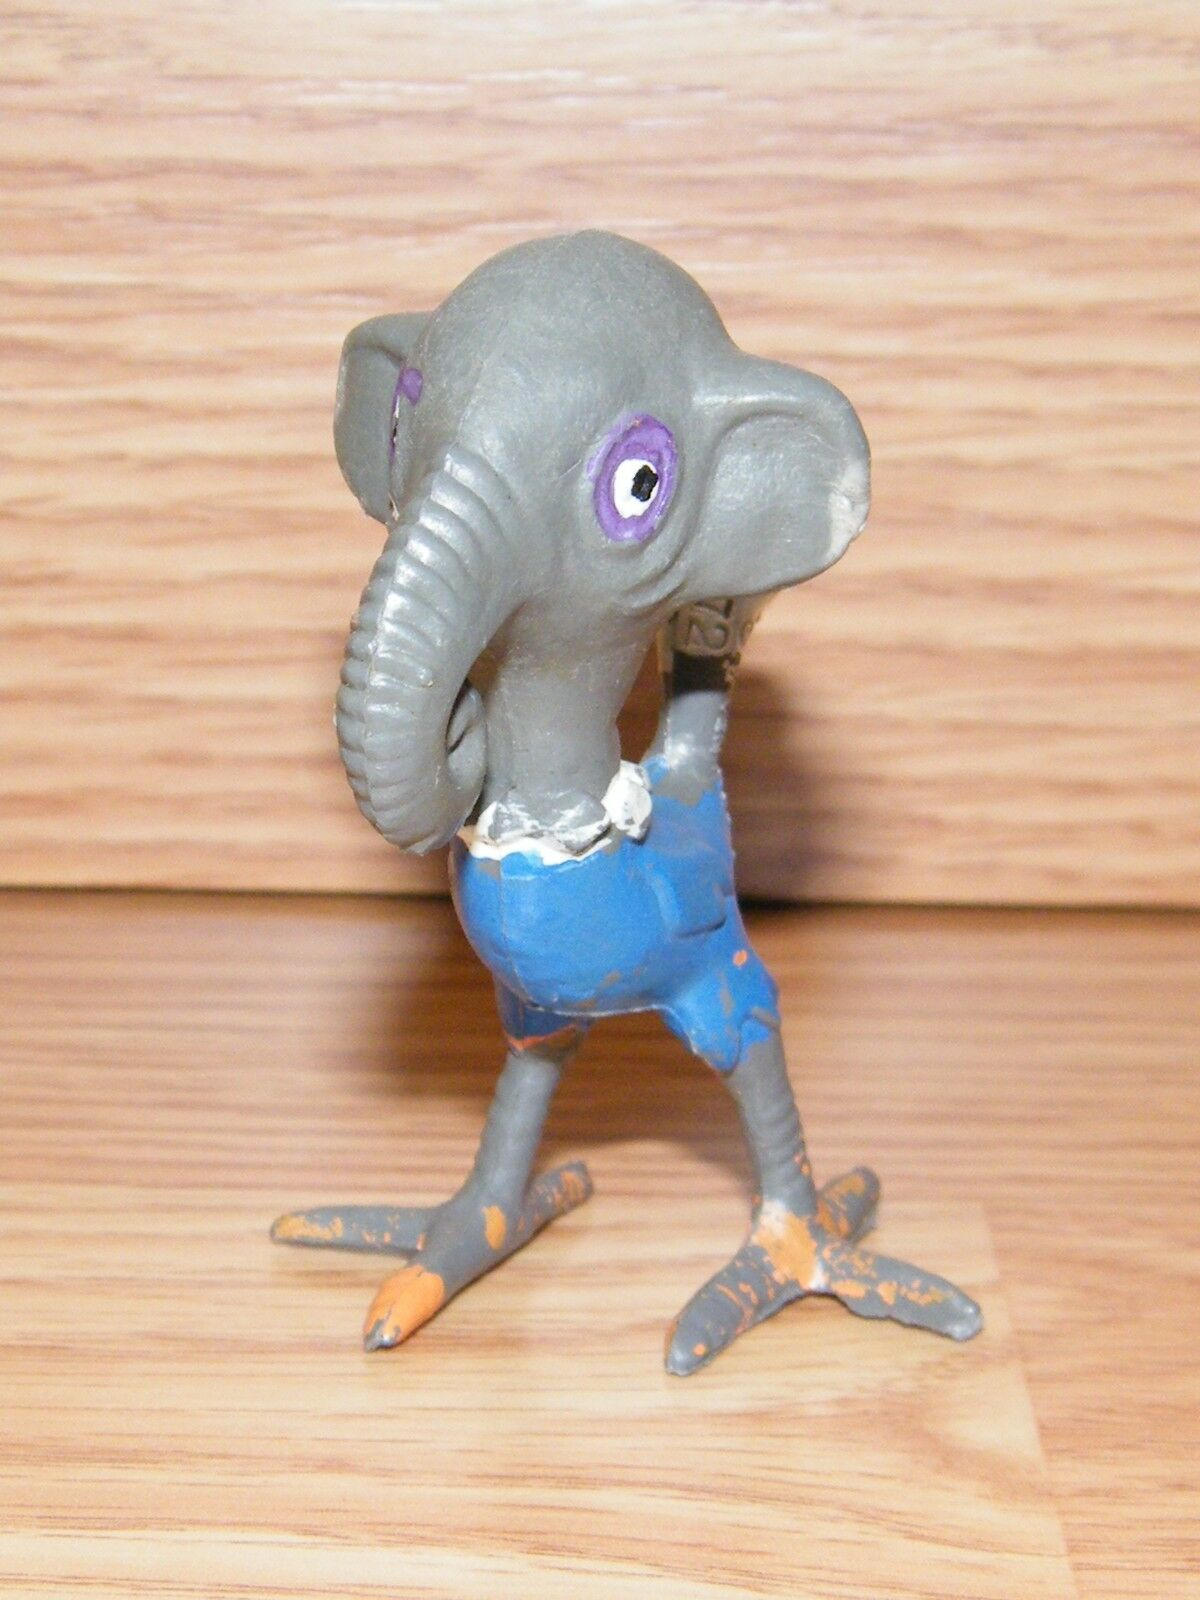 1972 Stevens Mfg Co. Mixed Up Zoo Tiere   Ostriphant Figur nur B